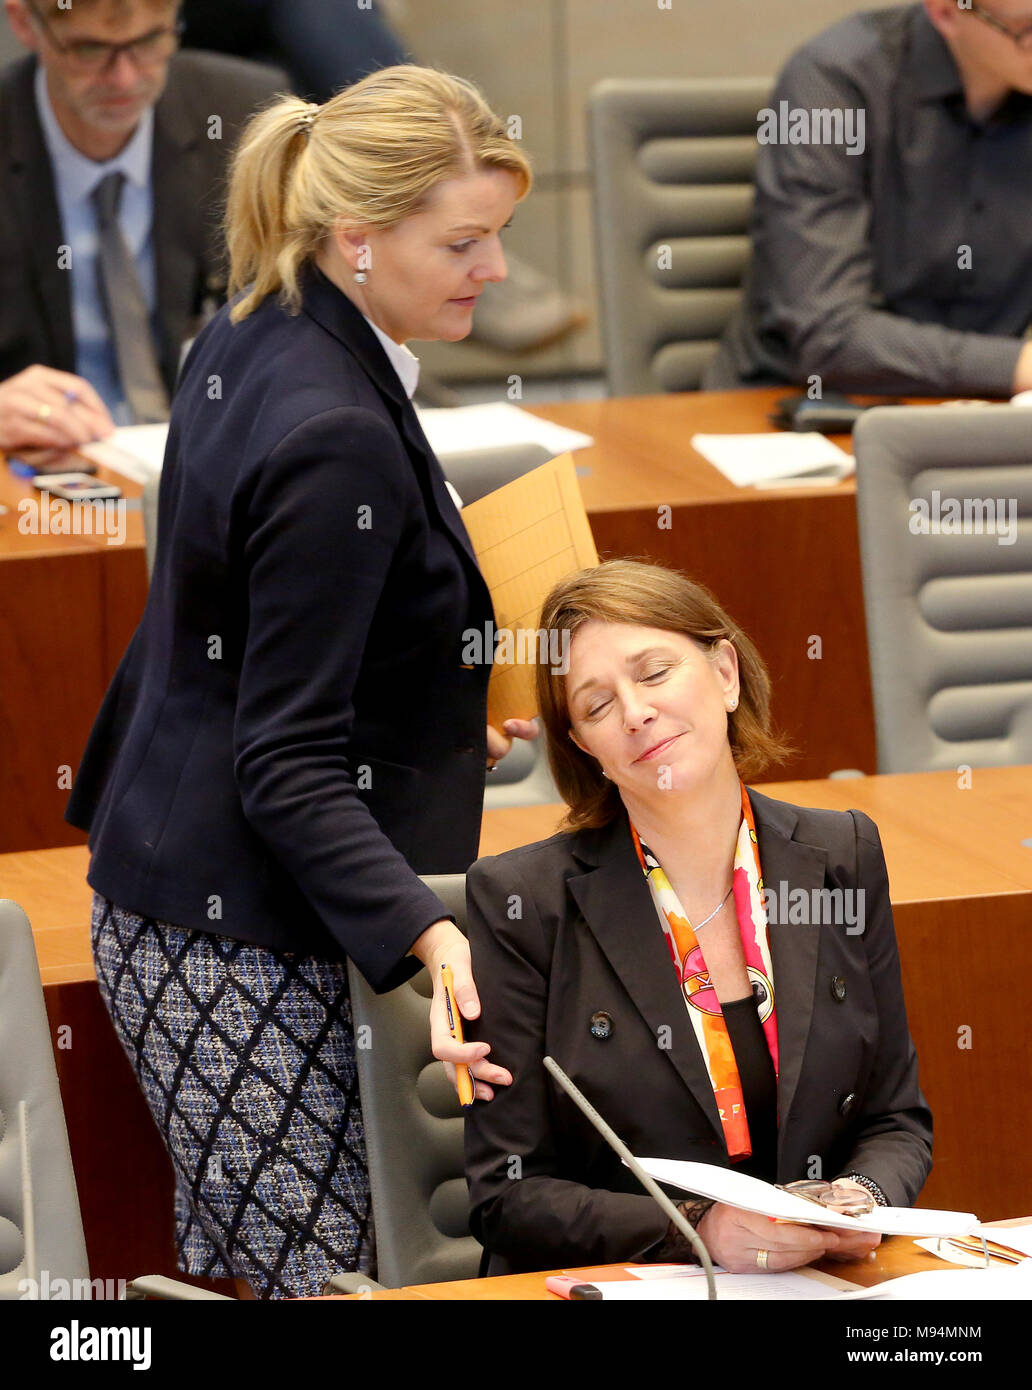 22 March 2018, Germany, Duesseldorf: North Rhine Westphalia's (NRW) Minister for Schools, Yvonne Gebauer, of the Free Democratic Party (FDP) being greeted by NRW's Minister for Agriculture of the Christian Democratic Union (CDU), Christina Schulze Foecking, at the session of the north rhine-westphalian state parliament. Topics of the session are rules for the state's art foundation and the introduction of a legislation amendment in schools for nine years of school until A-levels. Photo: Roland Weihrauch/dpa - Stock Image